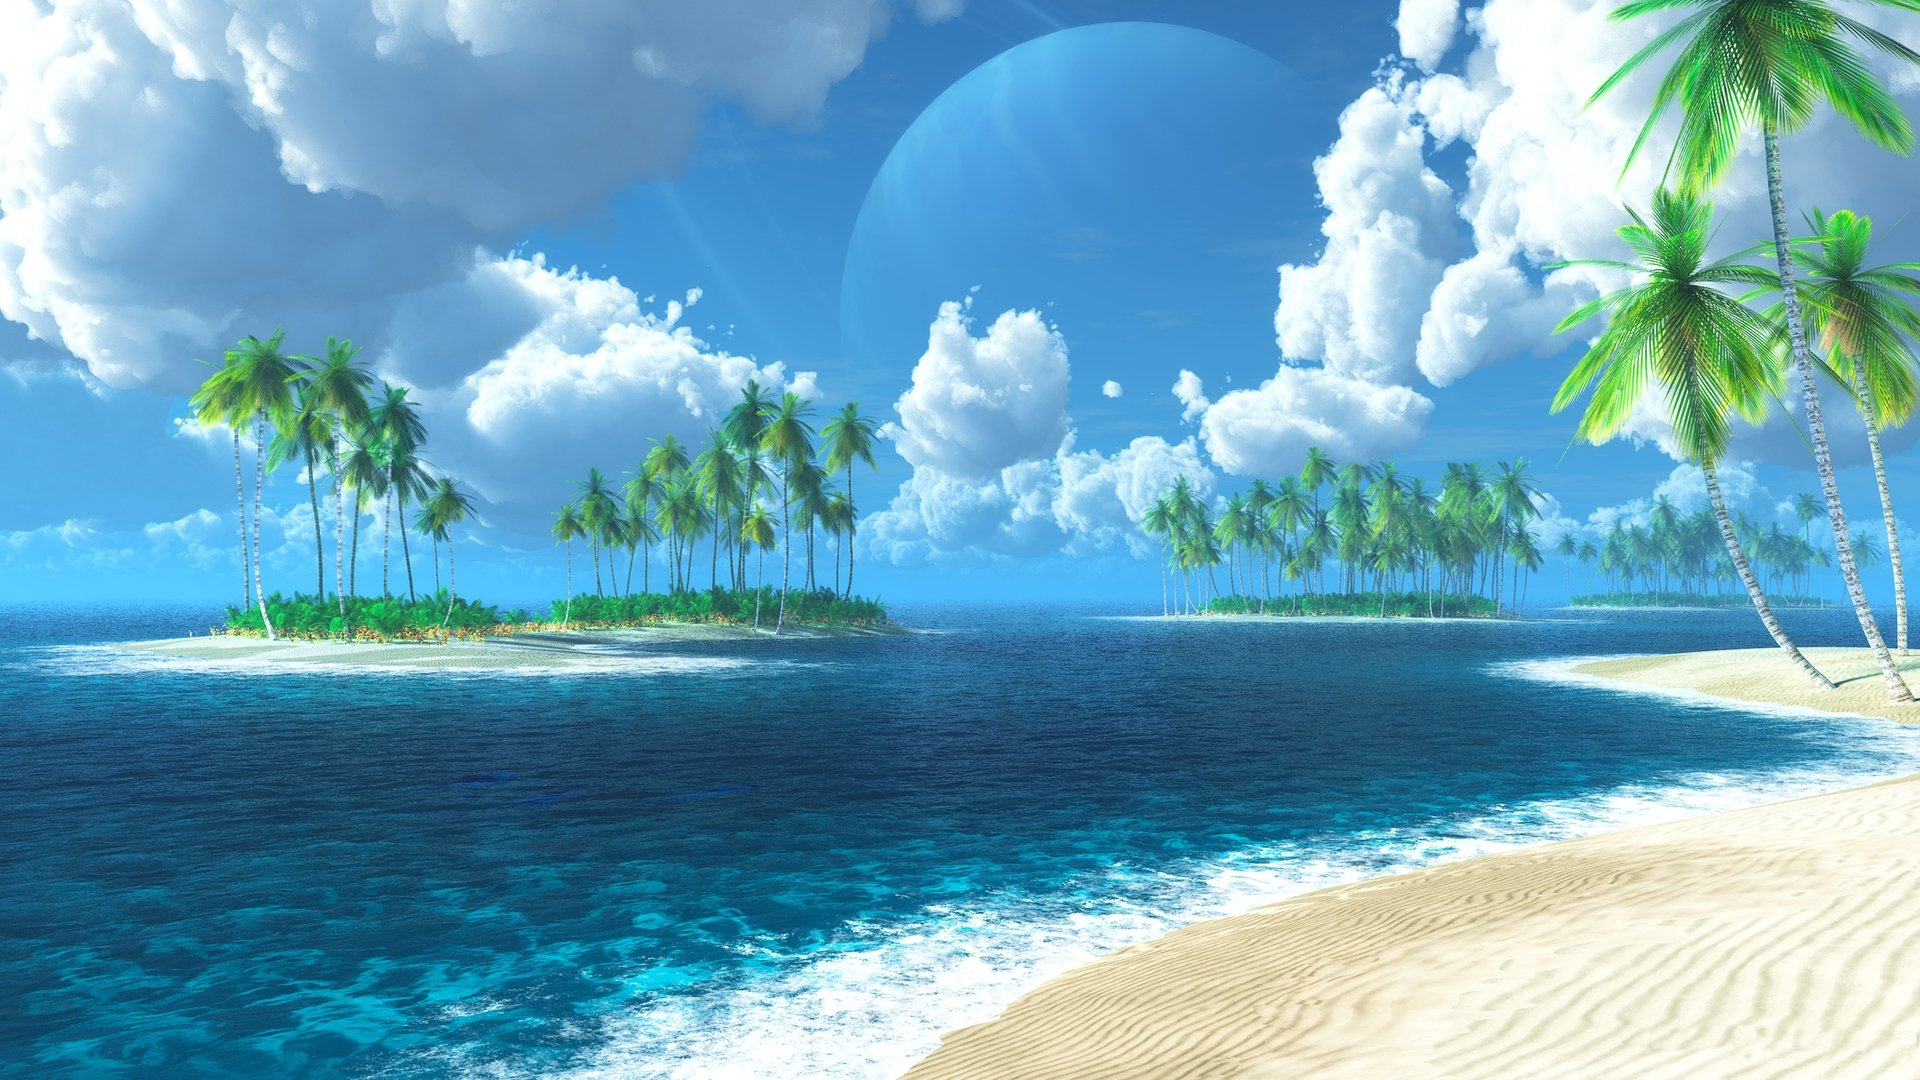 Exotic Ocean Island Wallpaper HD Desktop Wallpapers 1920x1080